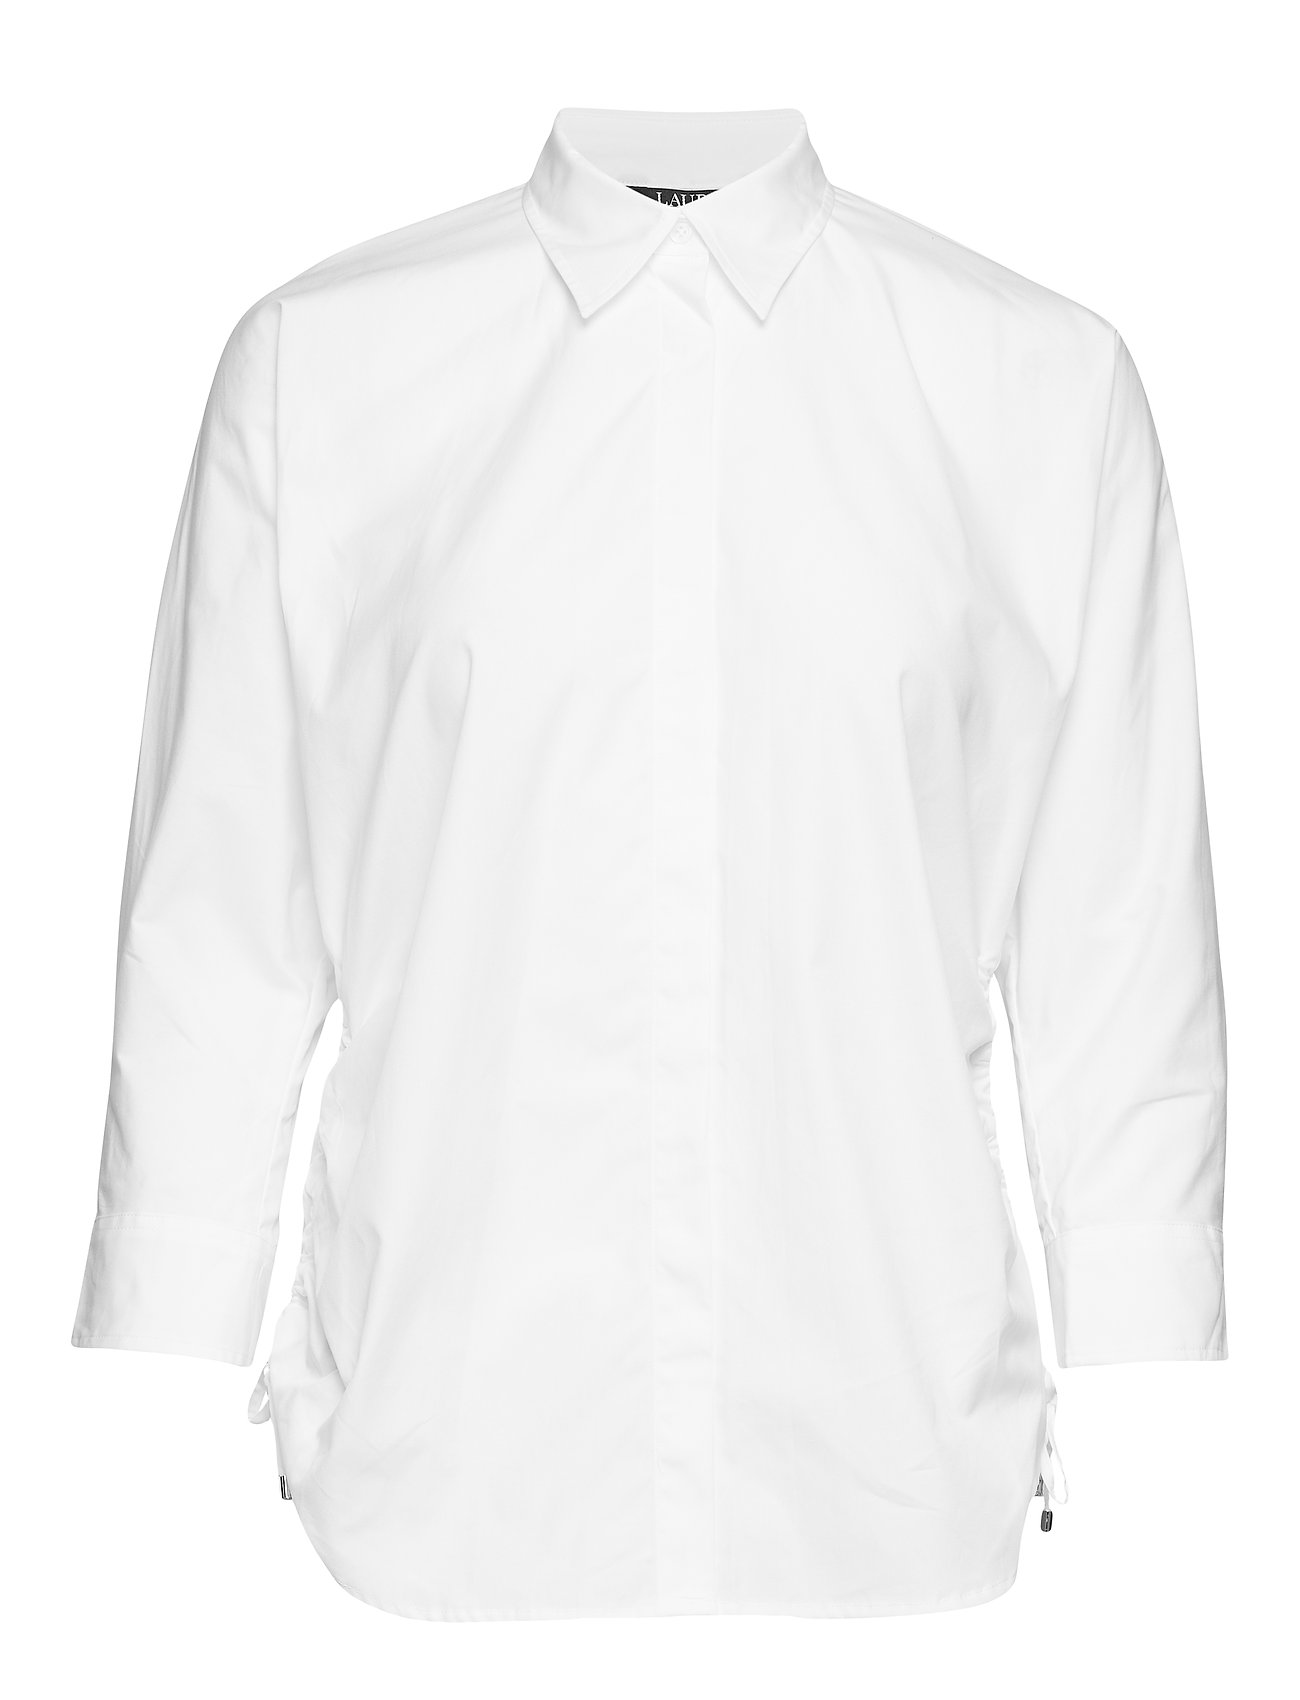 Lauren Ralph Lauren Side-Tie Cotton Button-Down Shirt